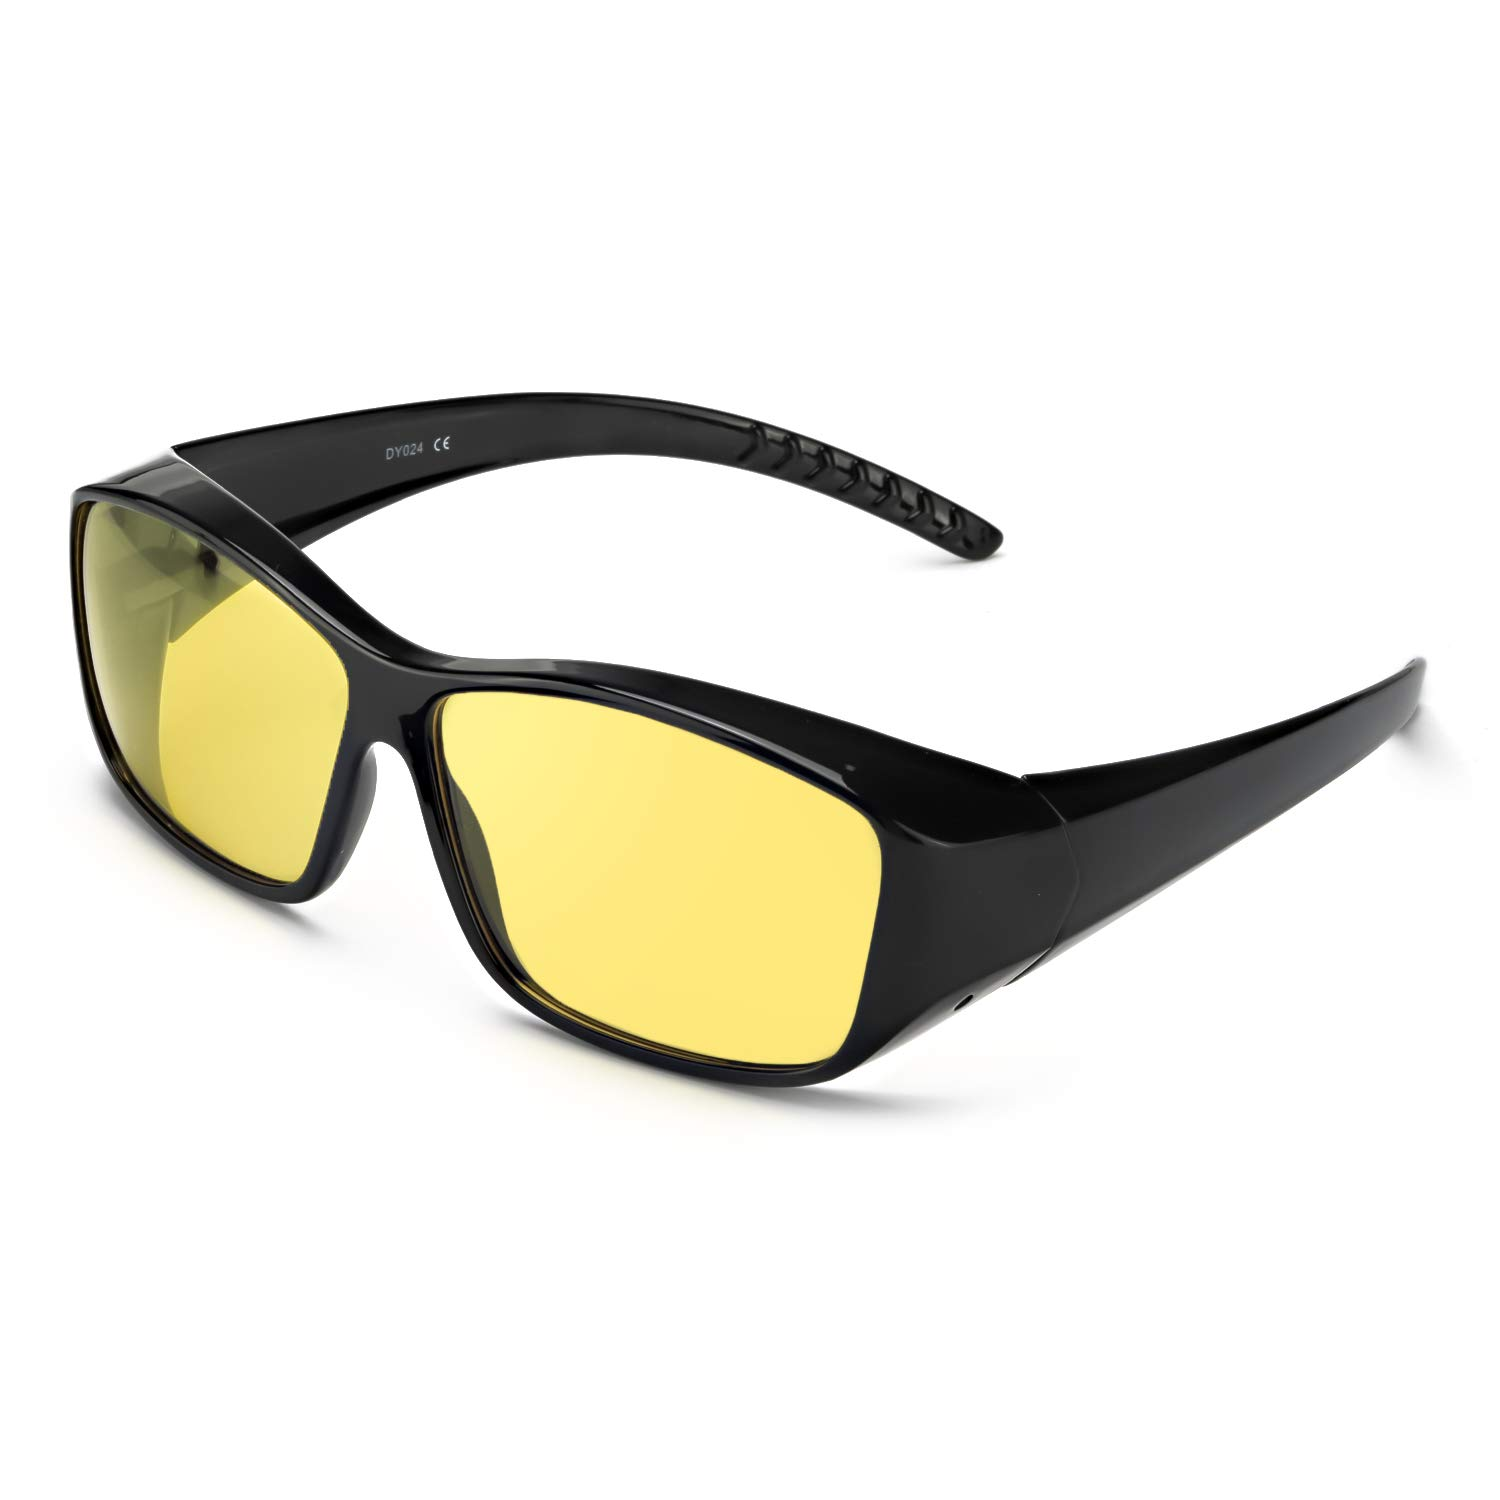 f29b89bfc1b8 Amazon.com  LVIOE Wrap Around Night Vision Glasses